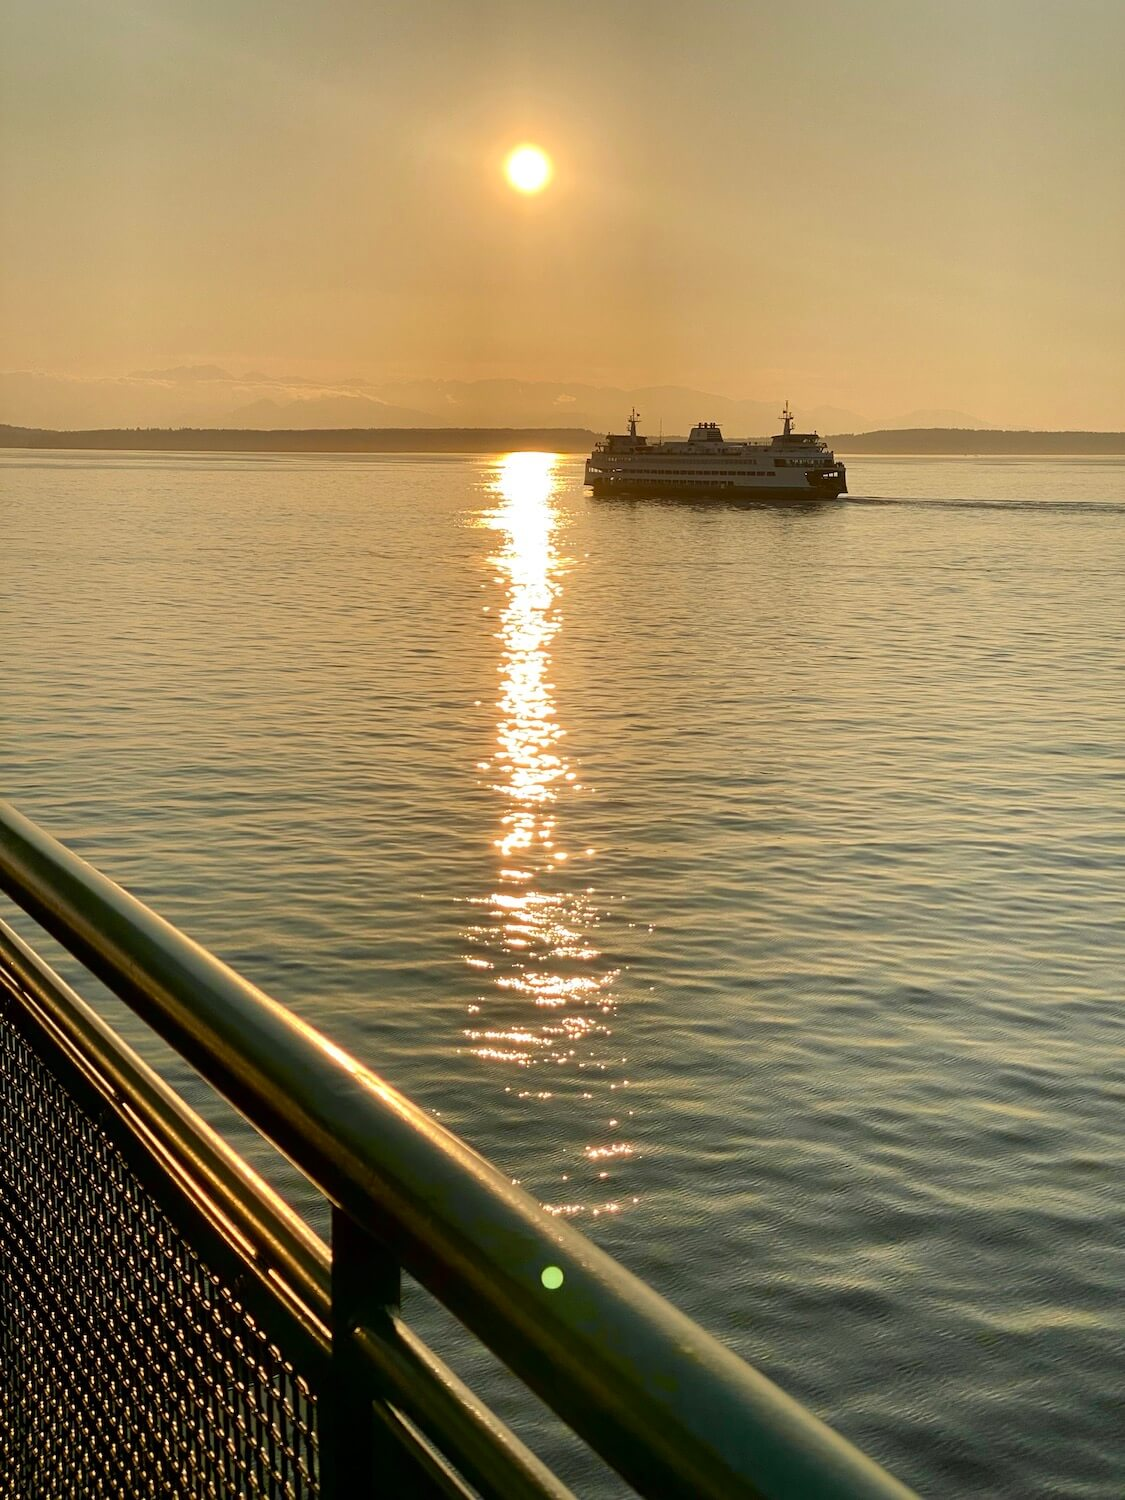 A beautiful golden sunset is captures from the deck of a Washington State Ferry of another ferry in the water. The Olympic Mountains are faint on the horizon while the sun casts a buttery glow on the ripples in the Salish Sea.